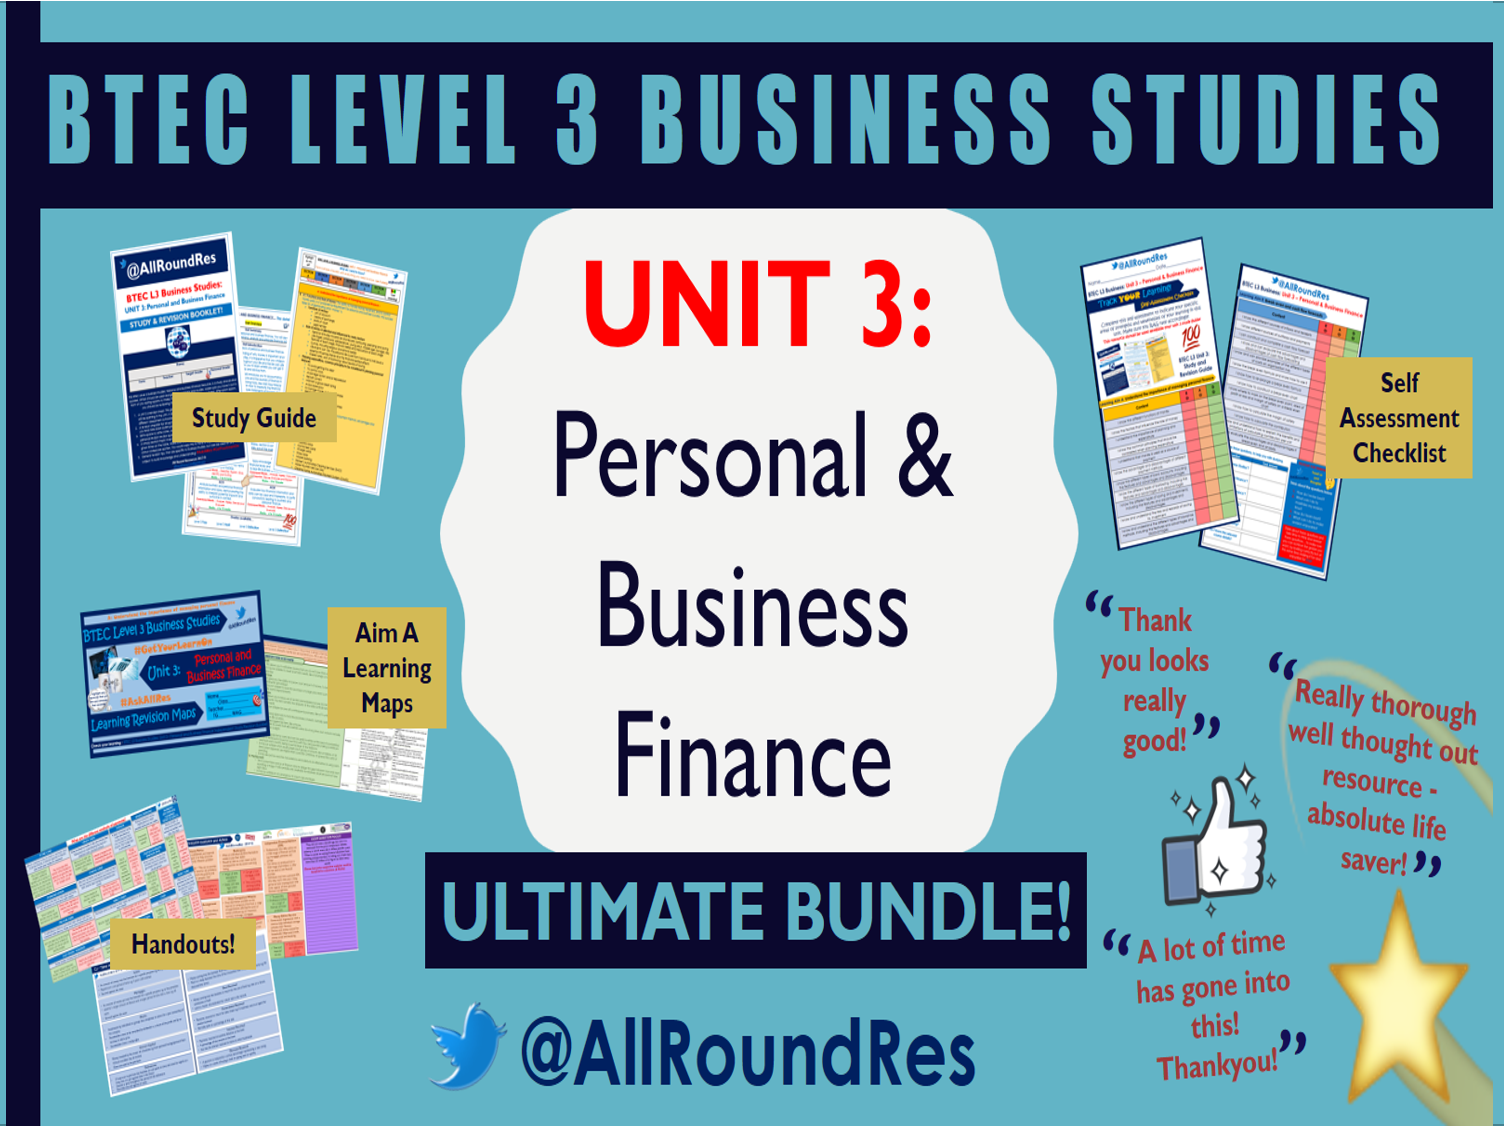 @AllRoundRes BTEC L3 Business Studies UNIT 3 BUNDLE!